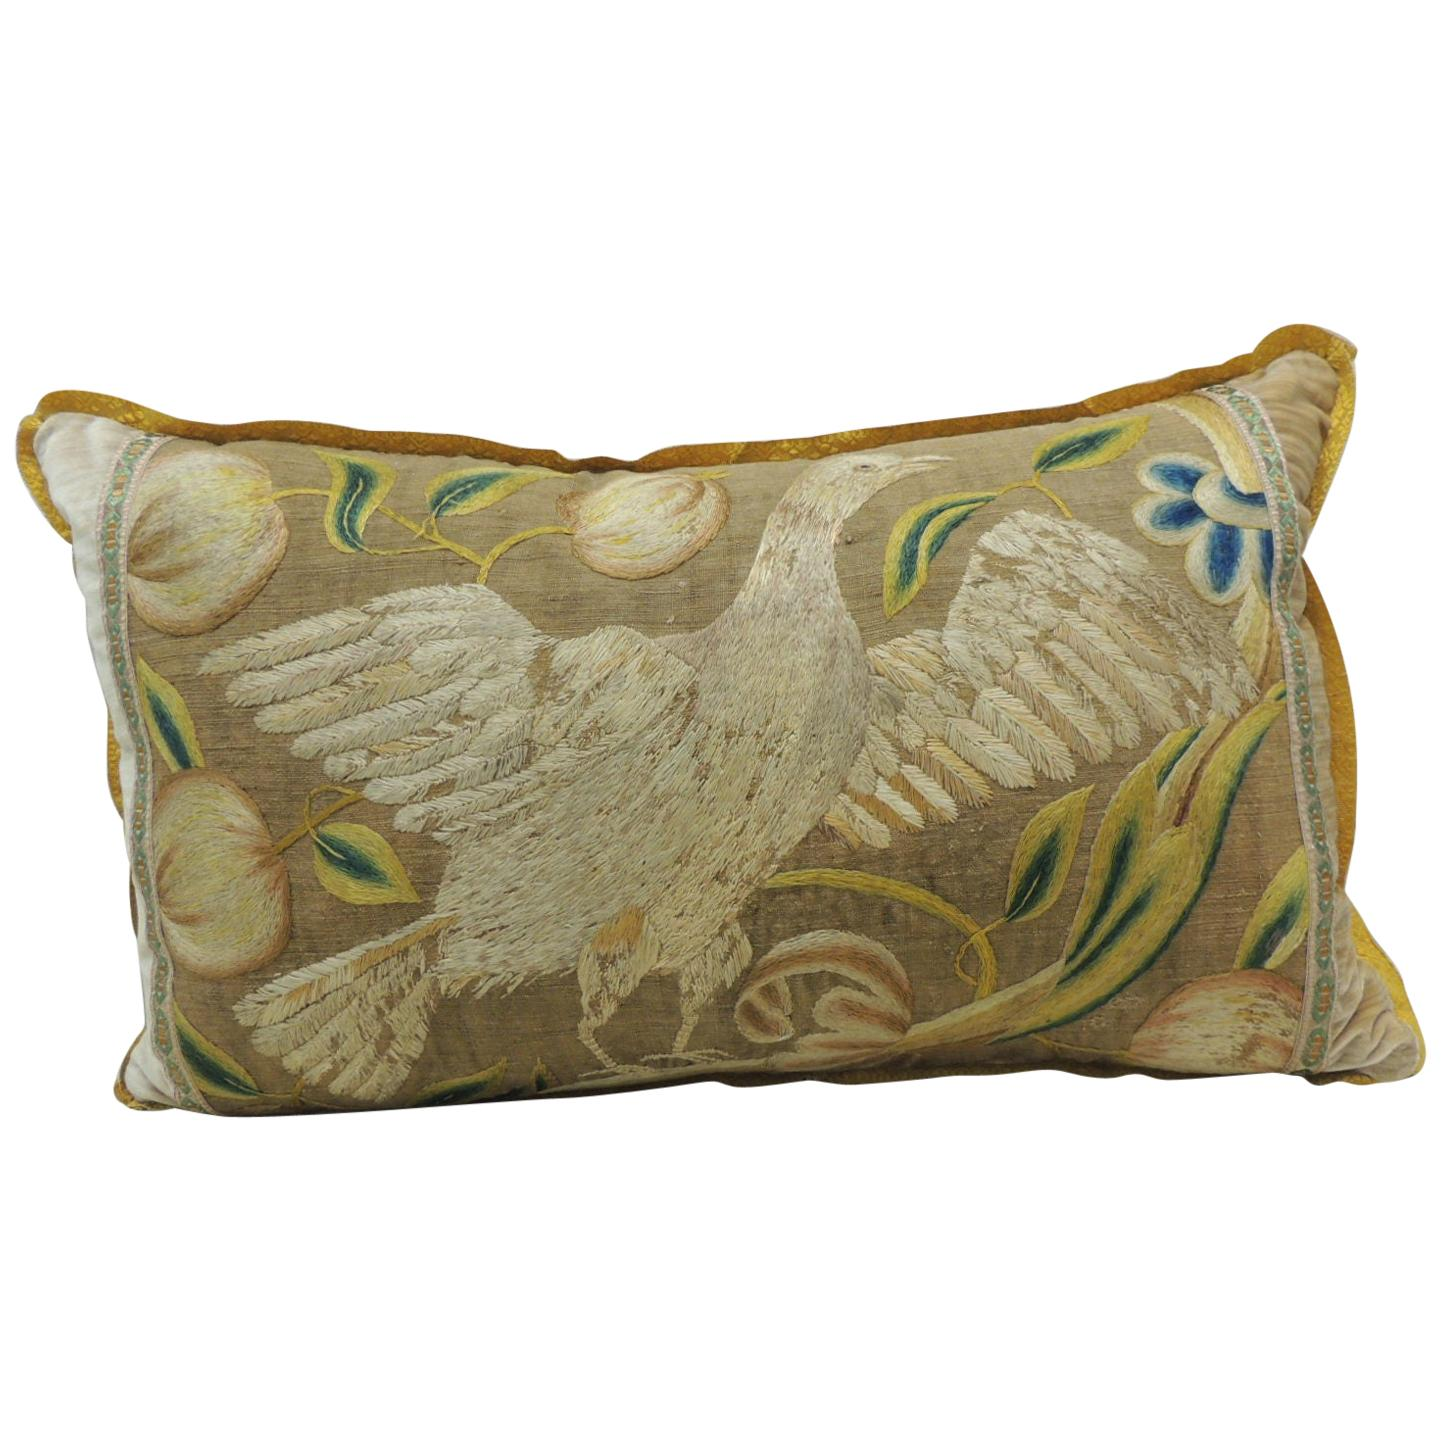 Antique Venetian Gold and Green Floral Embroidered Bolster Decorative Pillow